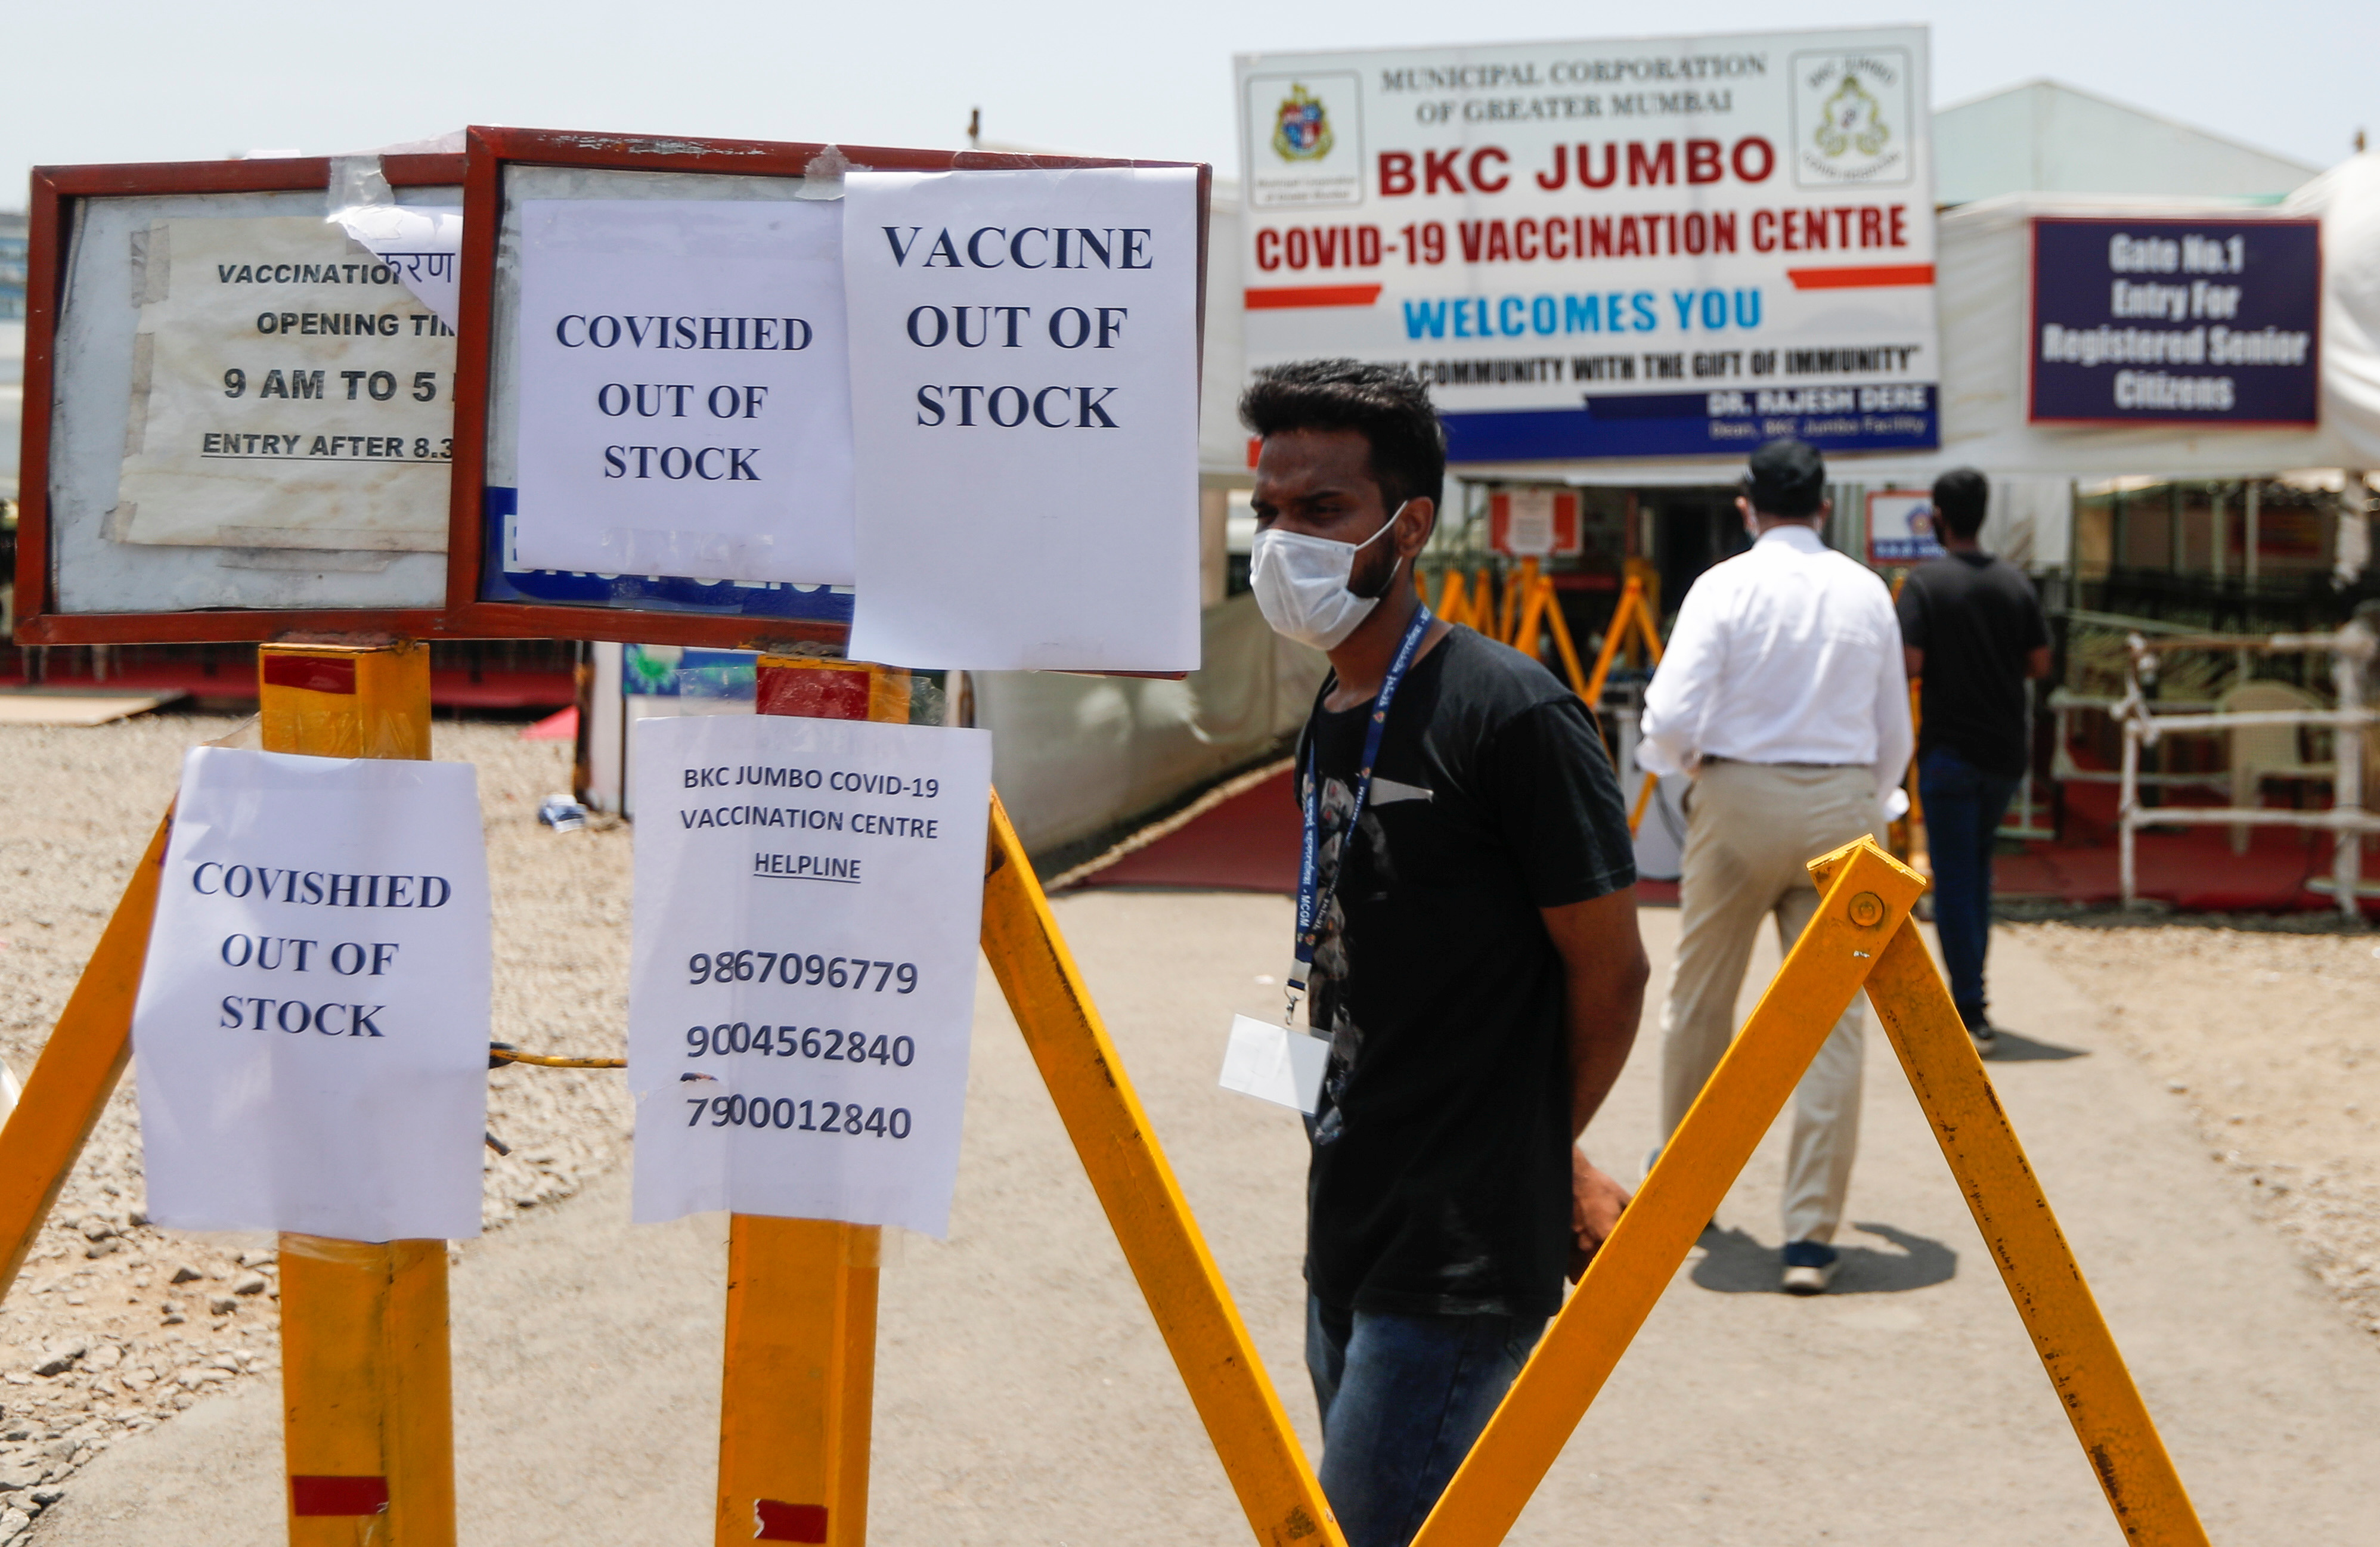 Notices about the shortage of COVISHIELD, a coronavirus disease (COVID-19) vaccine manufactured by Serum Institute of India, are seen outside a COVID-19 vaccination centre in Mumbai, India, April 20, 2021. REUTERS/Francis Mascarenhas